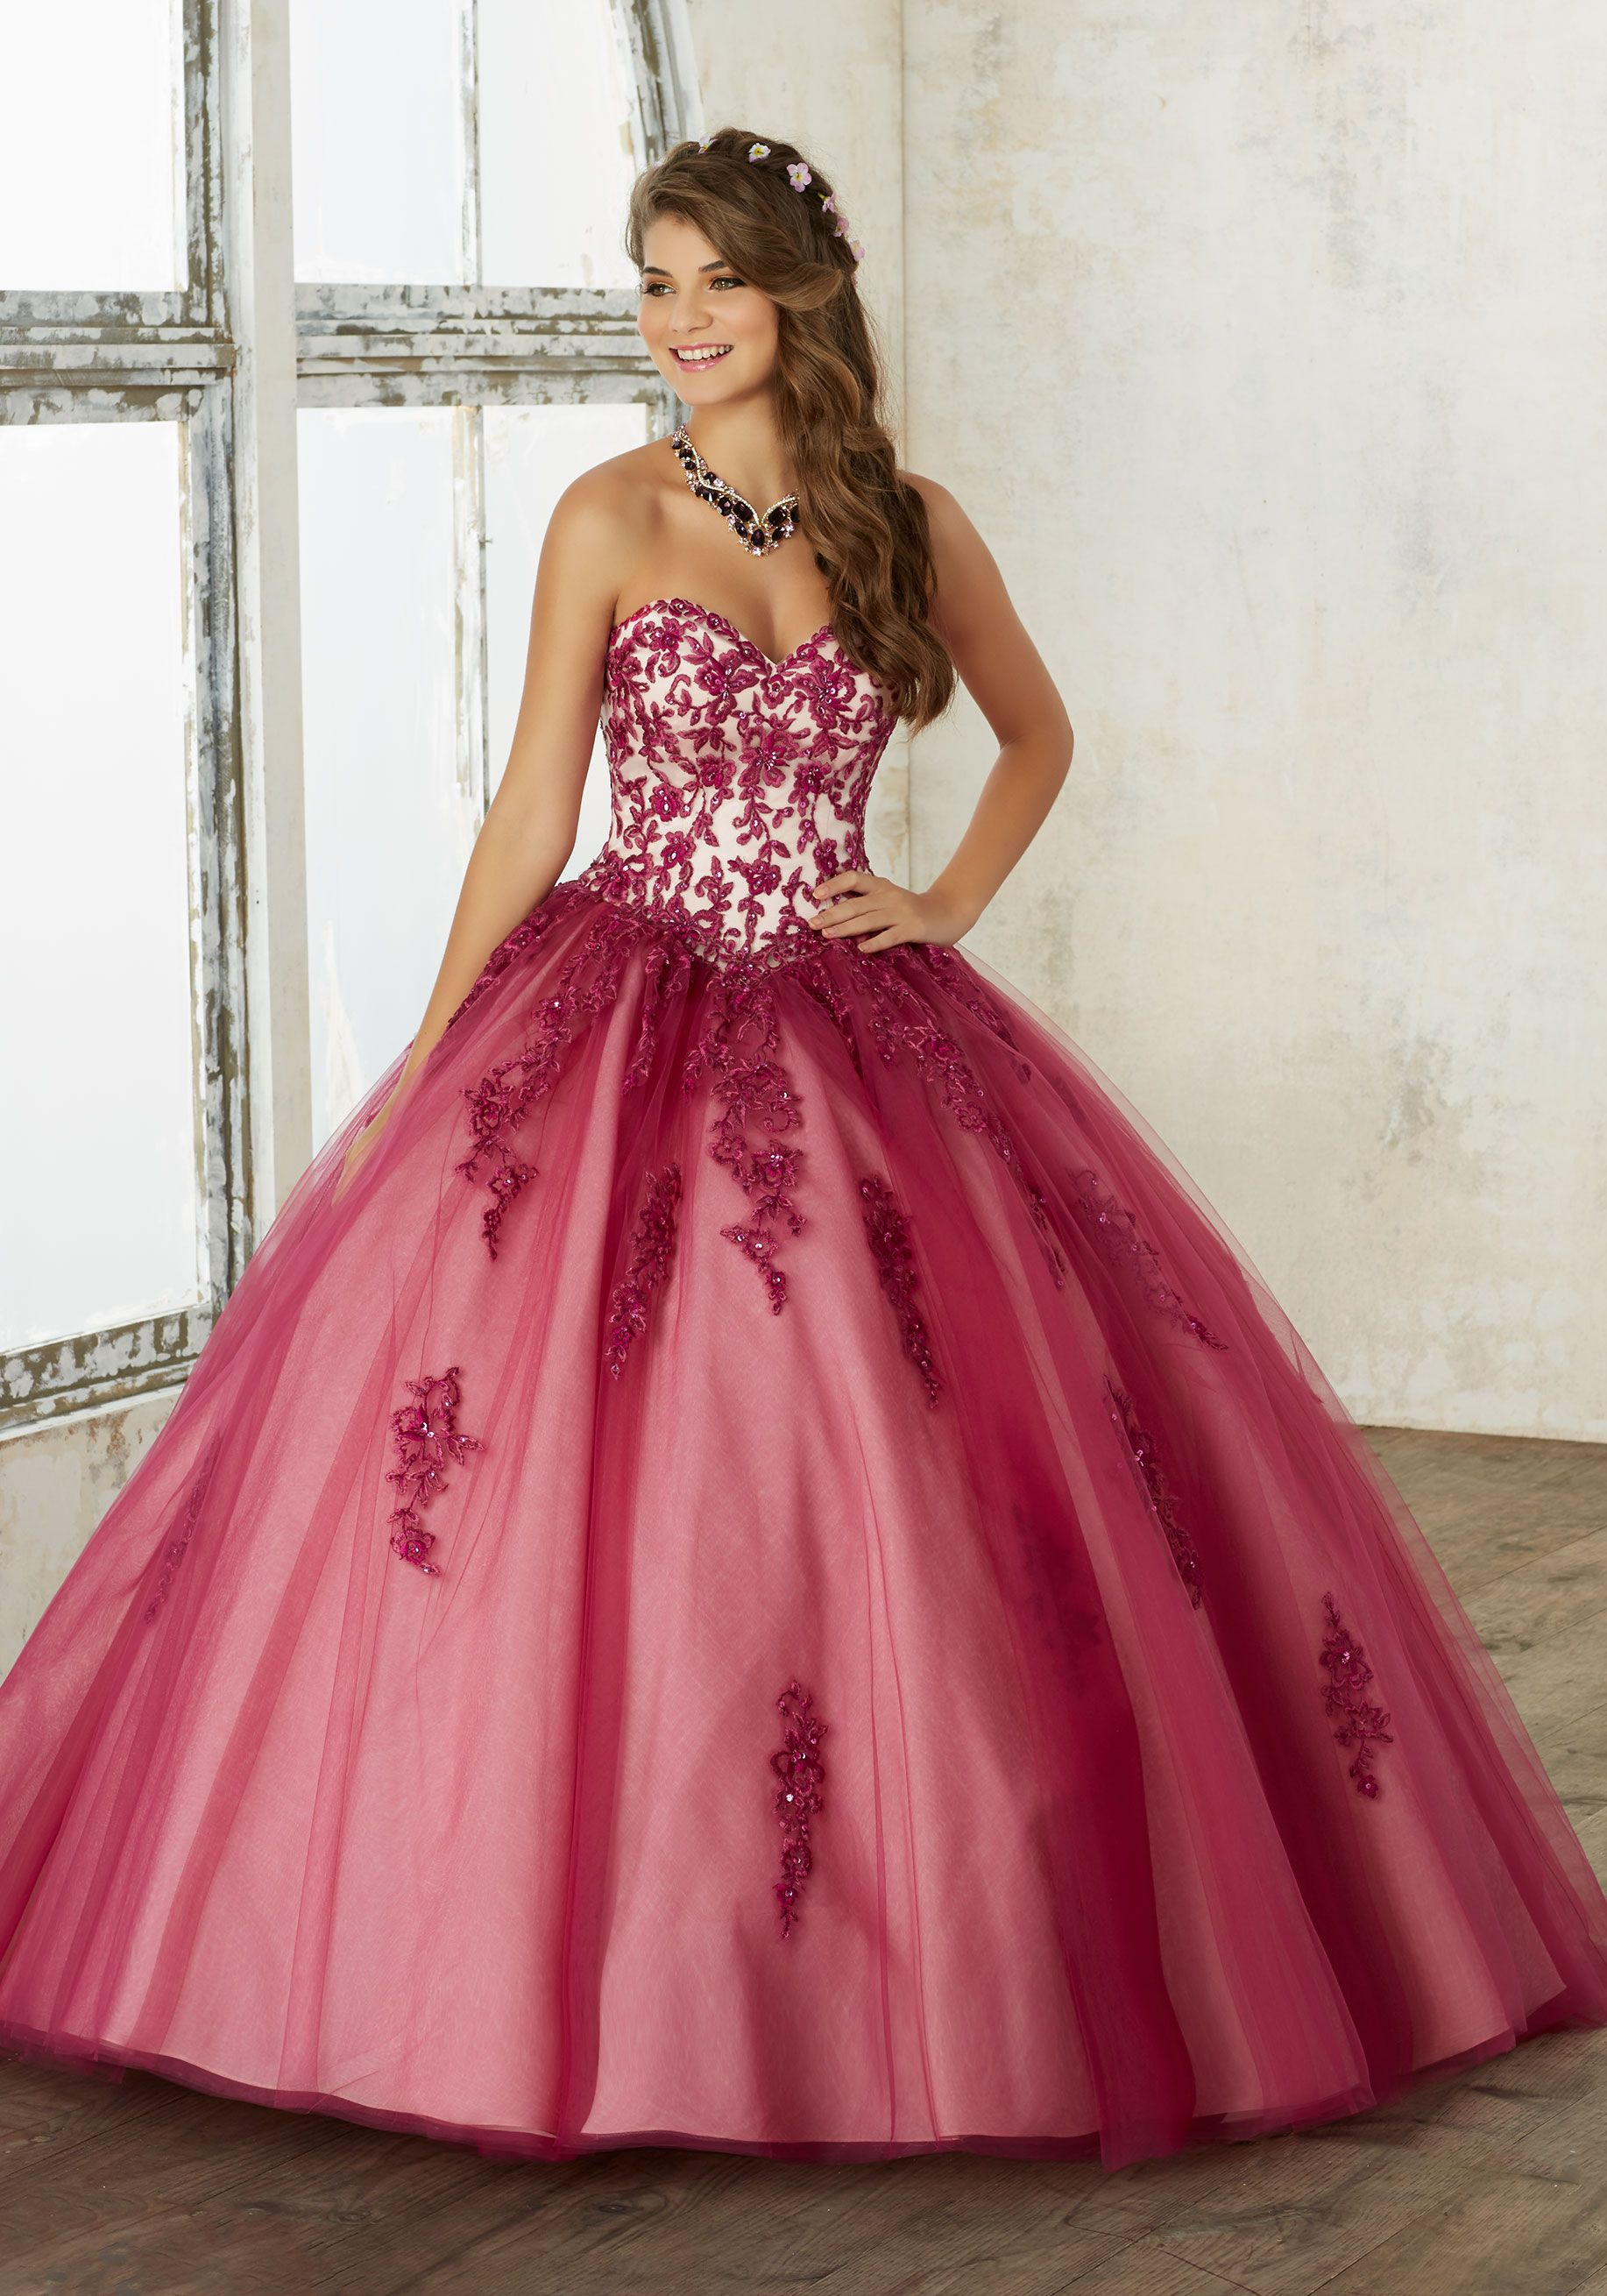 Embroidery and Beading on a Tulle Quinceañera Ball Gown | Valencia ...